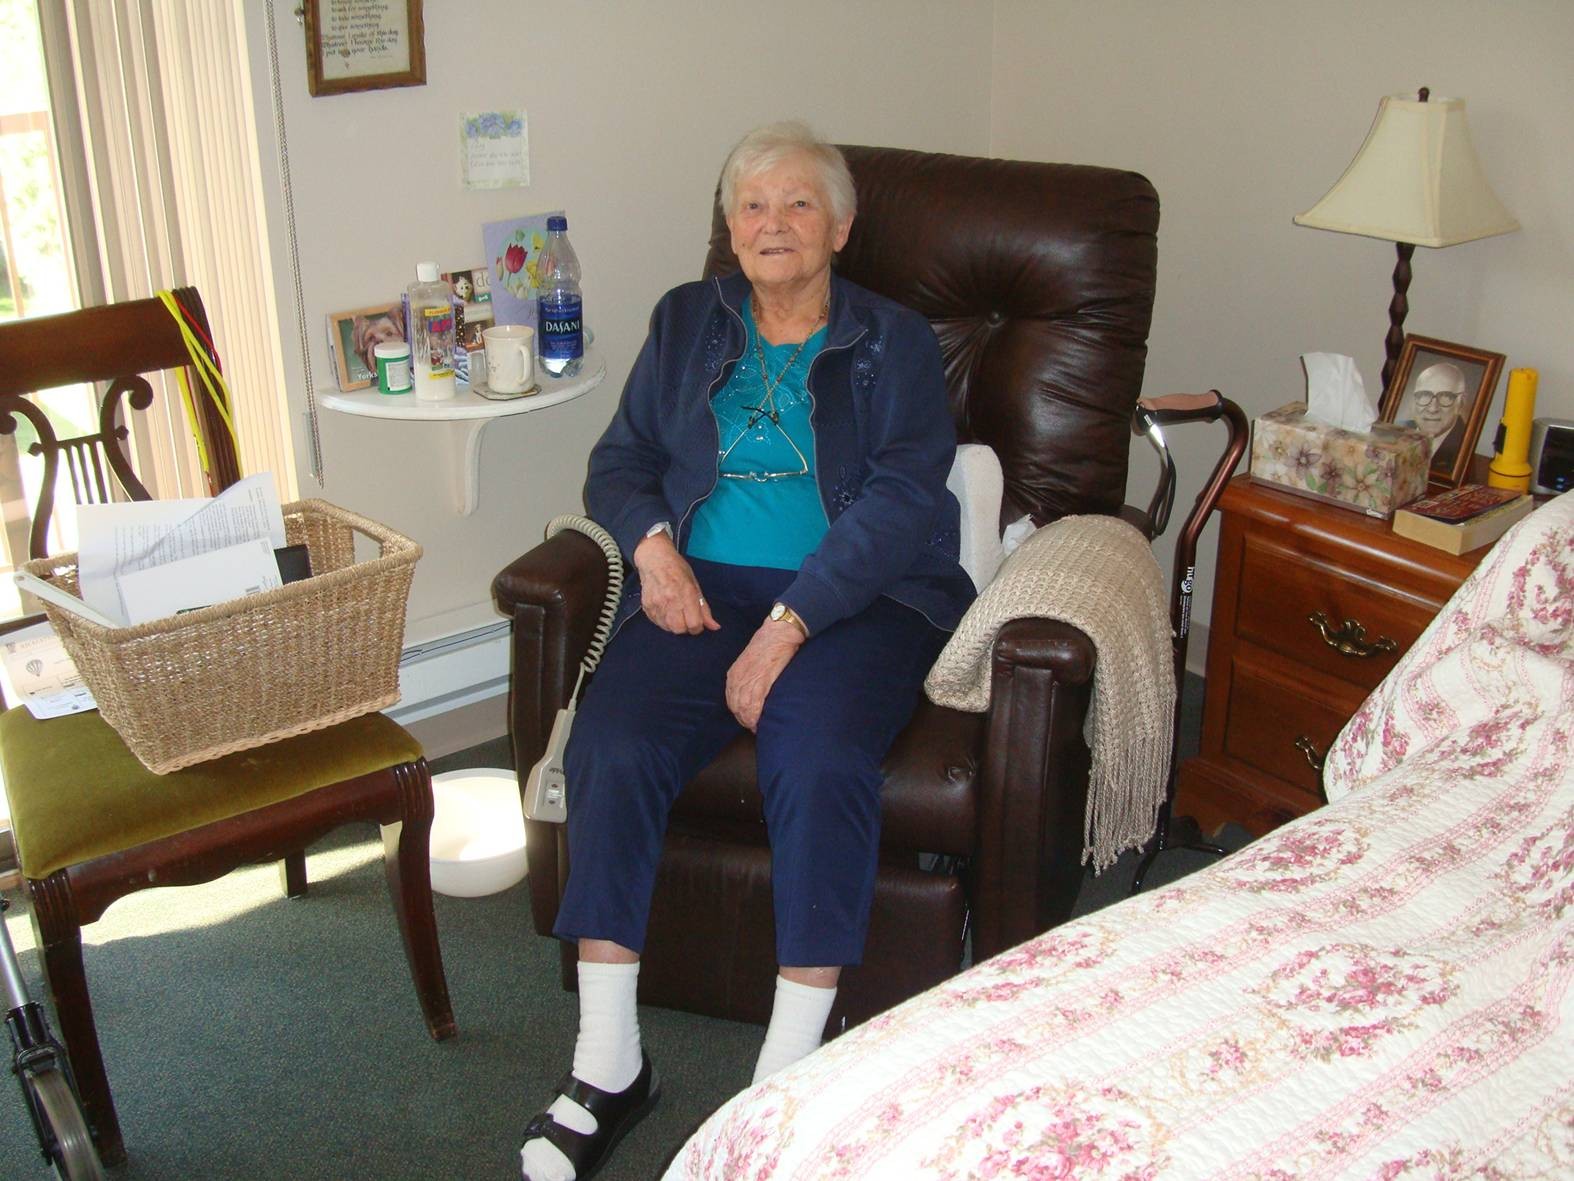 My mother, Thea Scott, in the assisted living home.  A good place for her.